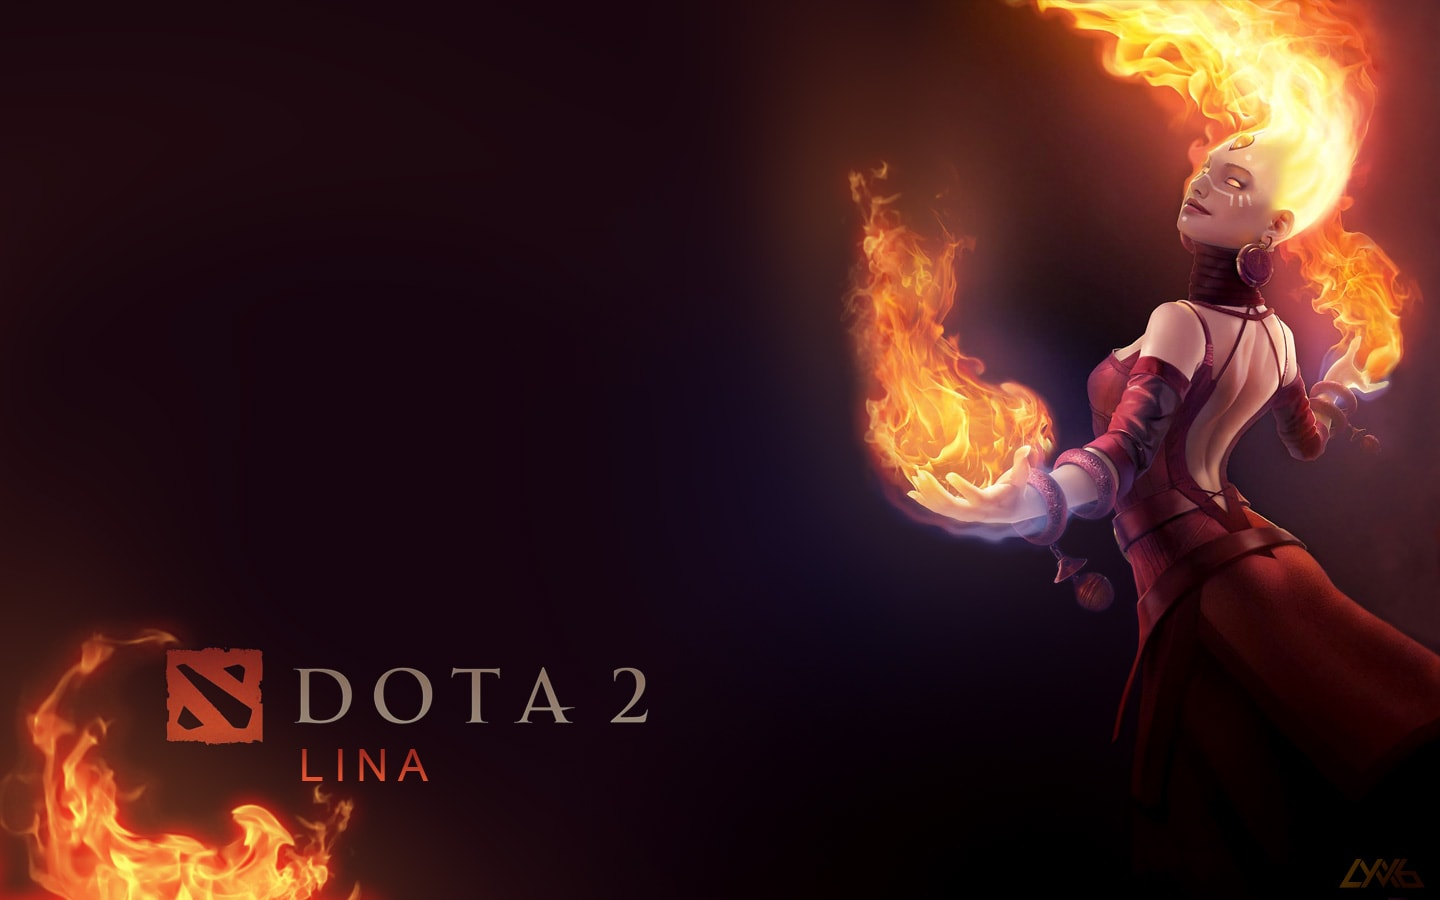 Dota2 : Lina widescreen wallpapers